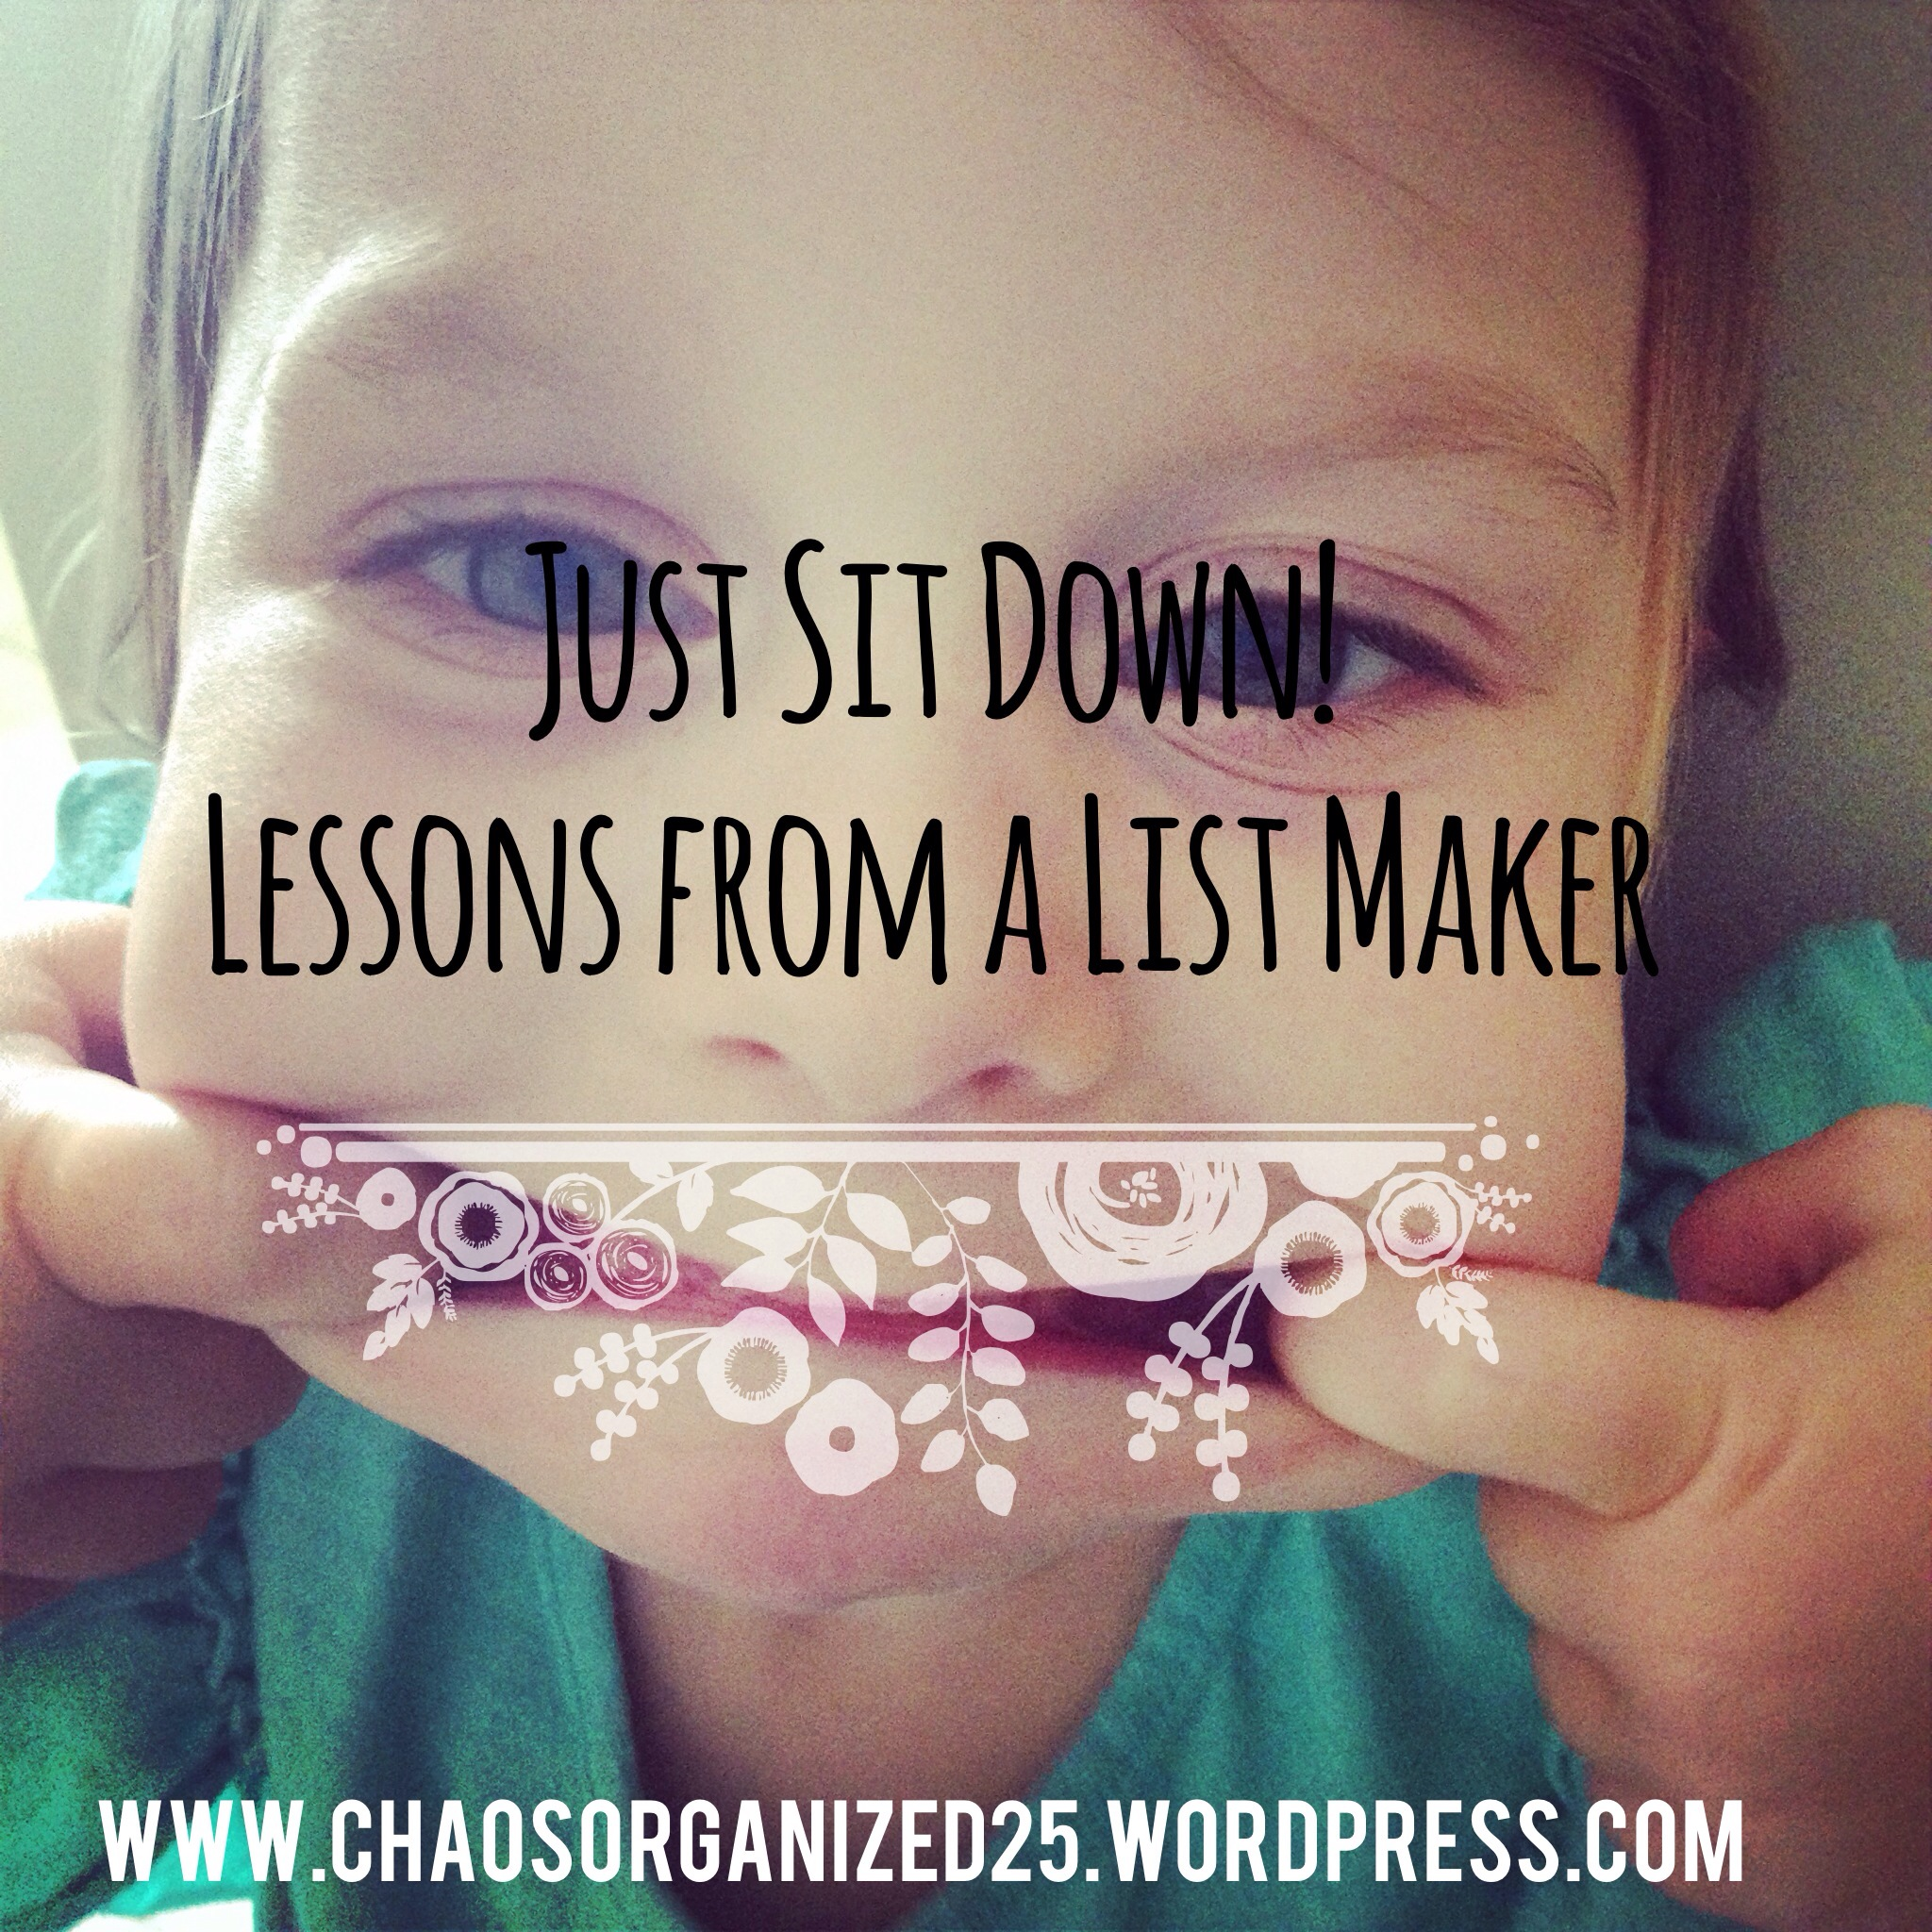 JUST SIT DOWN! A Lesson from a List Maker